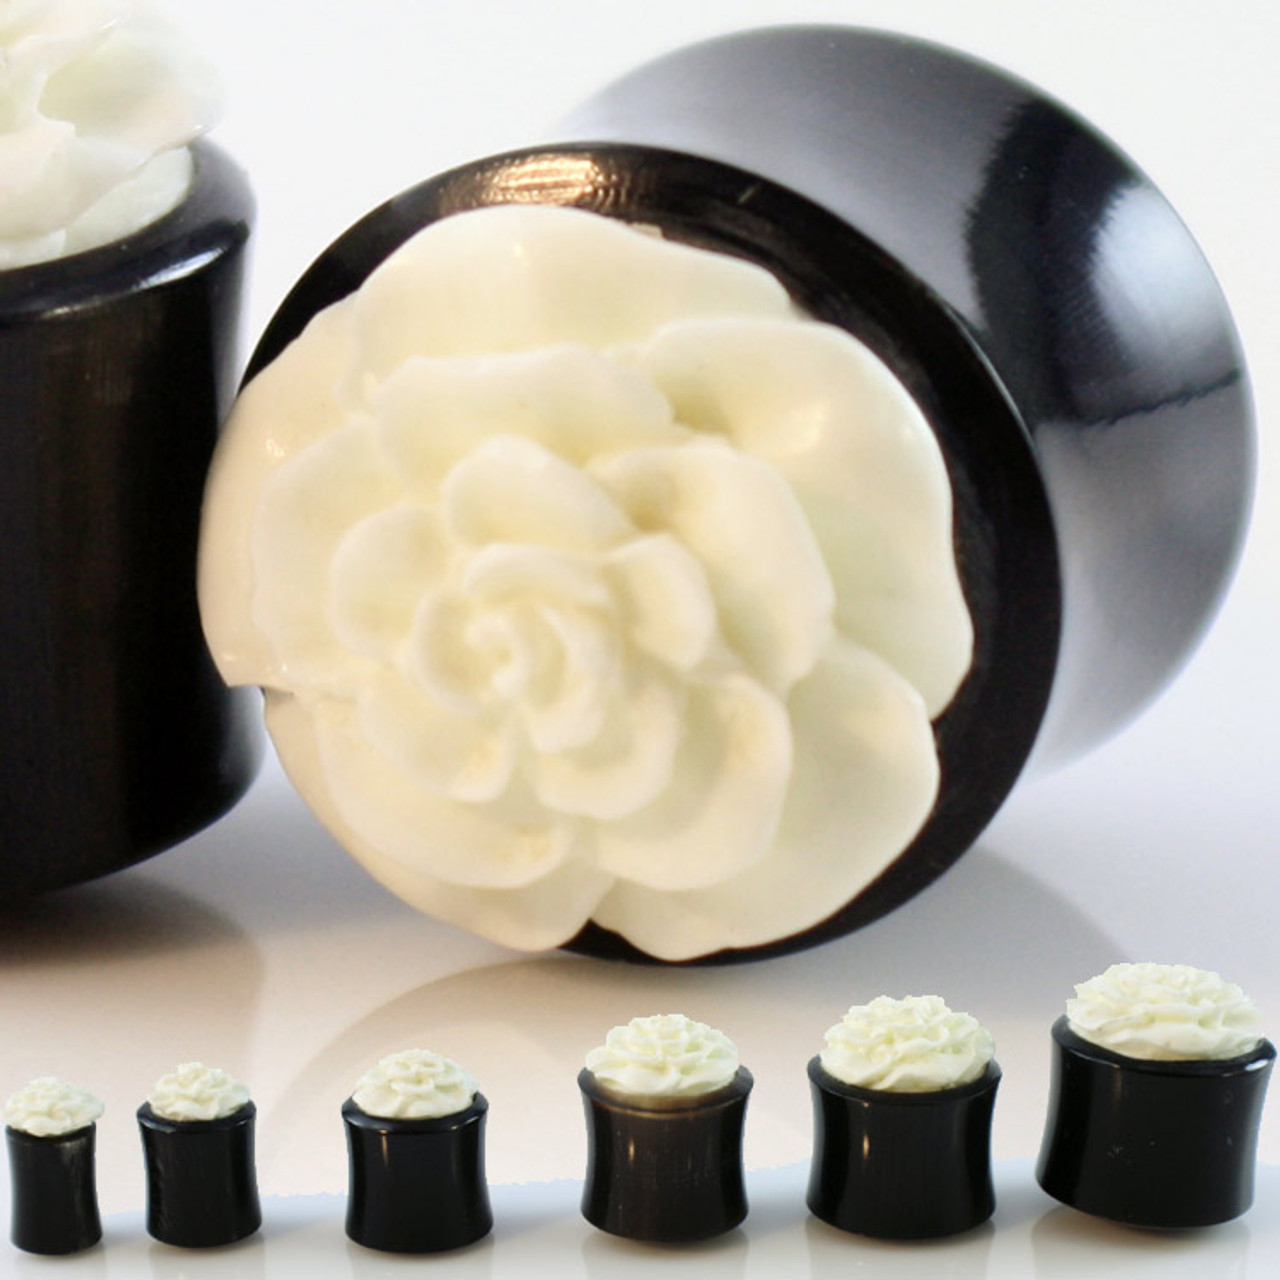 Organic Hand Carved Flower Ear Plugs Bone Horn 5 2mm 6 5mm 8mm 10mm 12mm 14mm 16mm 19mm Gauge Gear